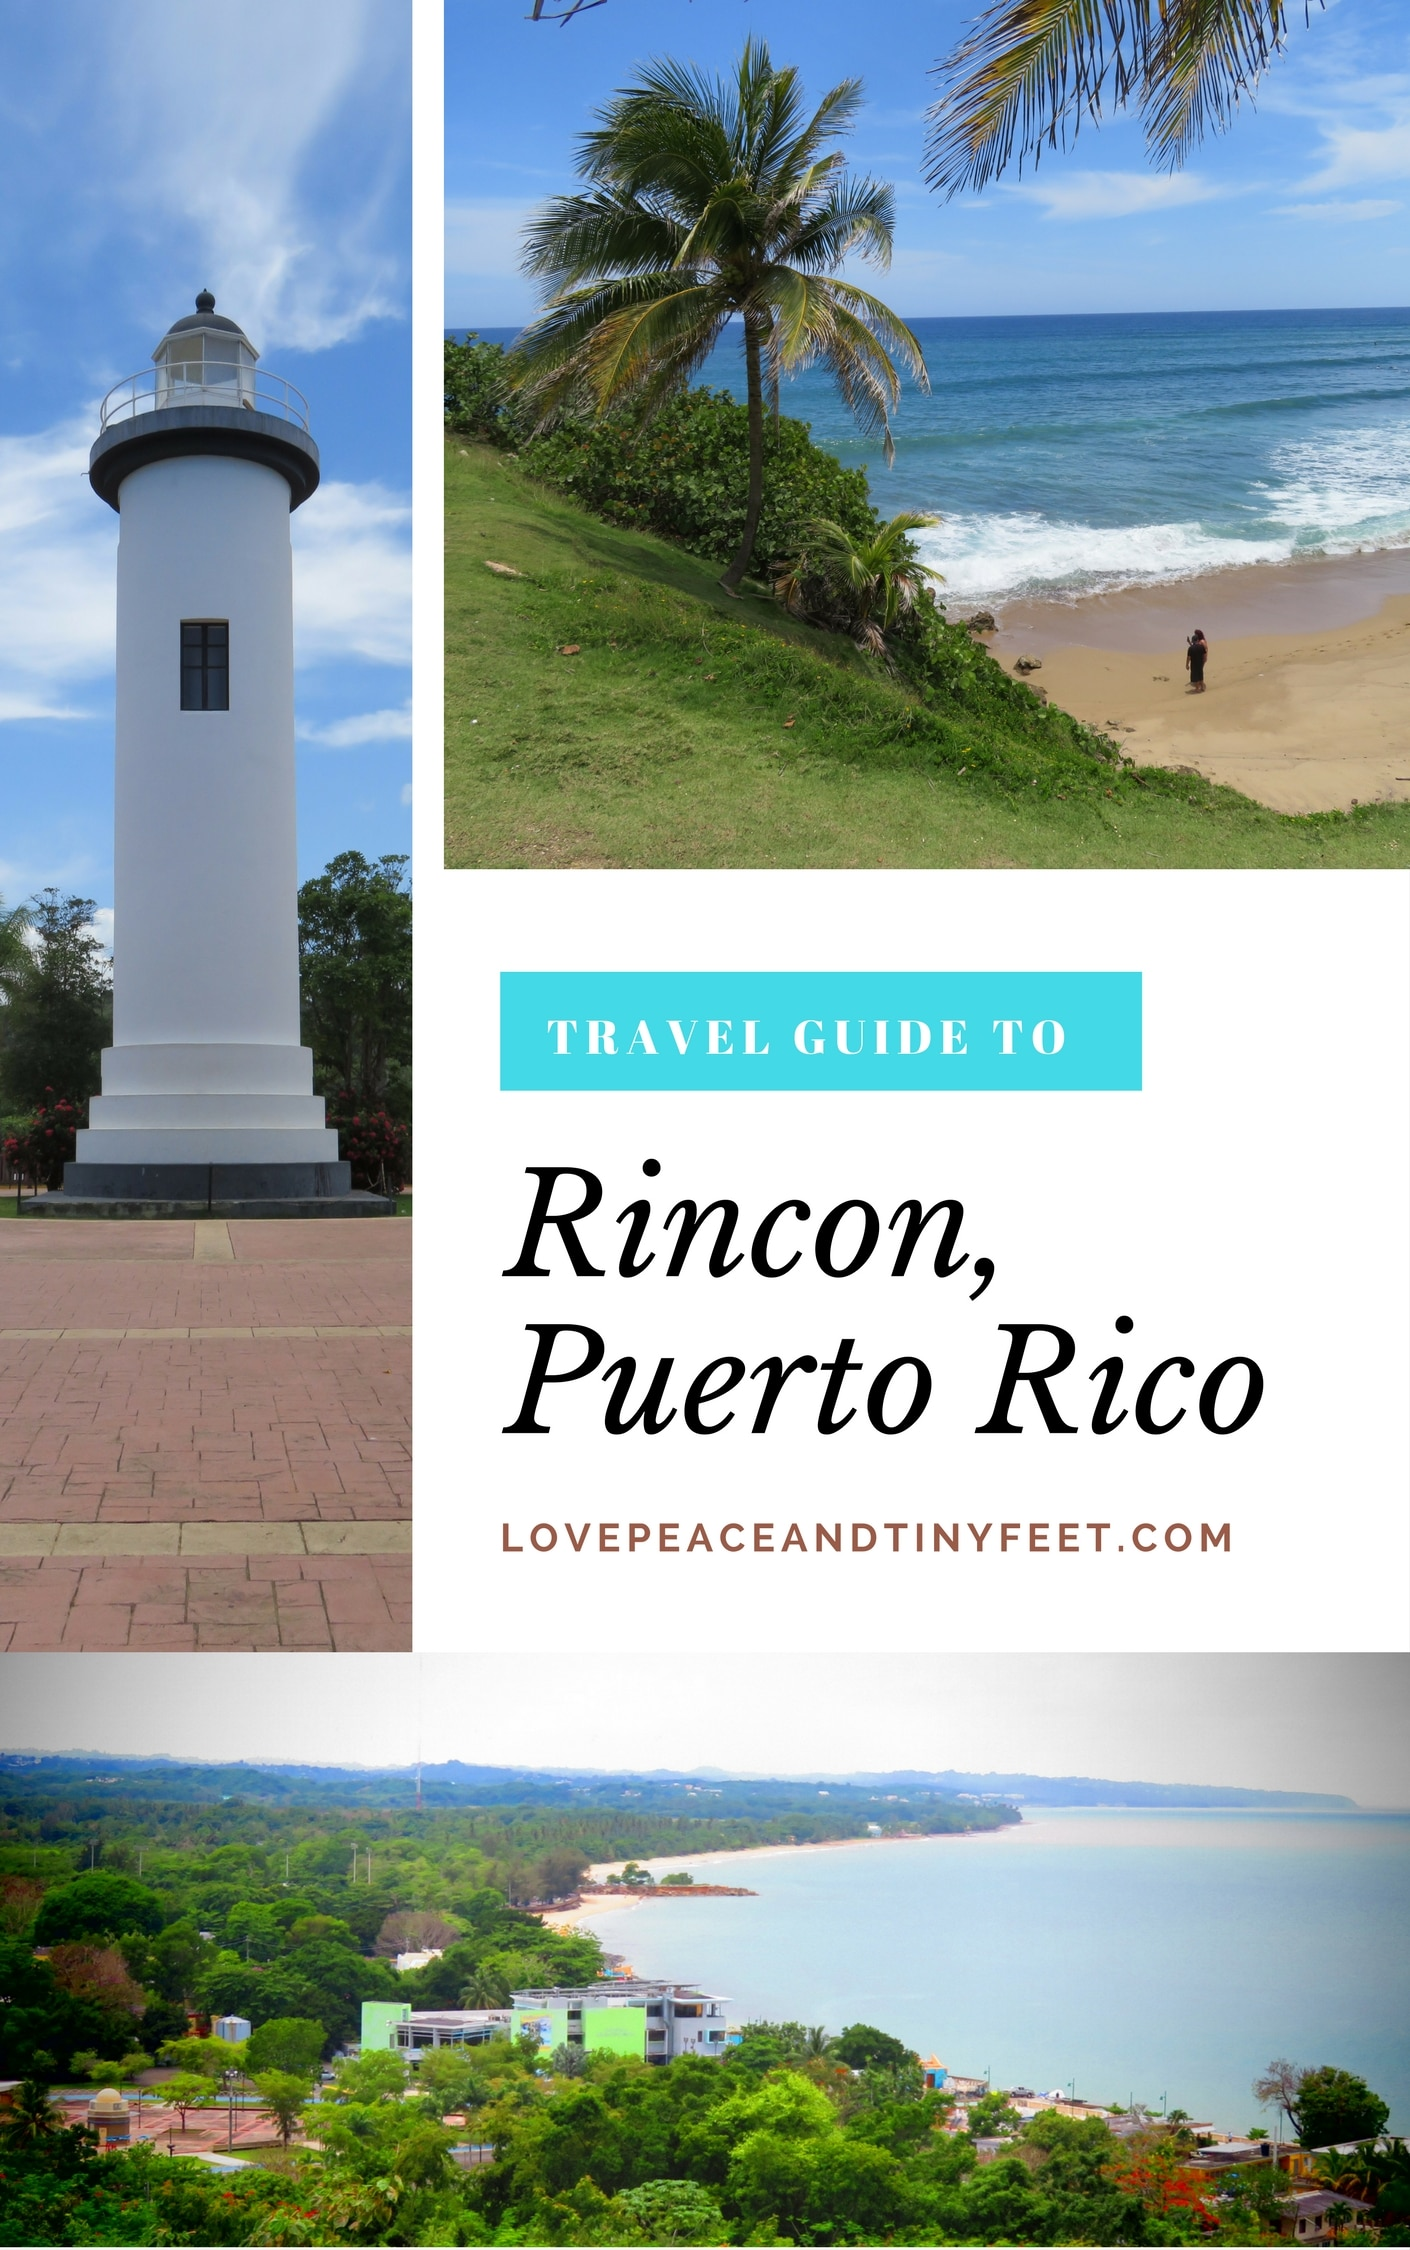 All in all, if you're looking for a relaxing beach vacation and a break from the hustle and bustle of big city life, I highly recommend you visit Rincon!  It's perfect for a couples trip, girlfriends getaway, or even a family vacation. Check out this review for where to stay in Rincon, what to do, where to shop and other major attractions in Rincon Puerto Rico.